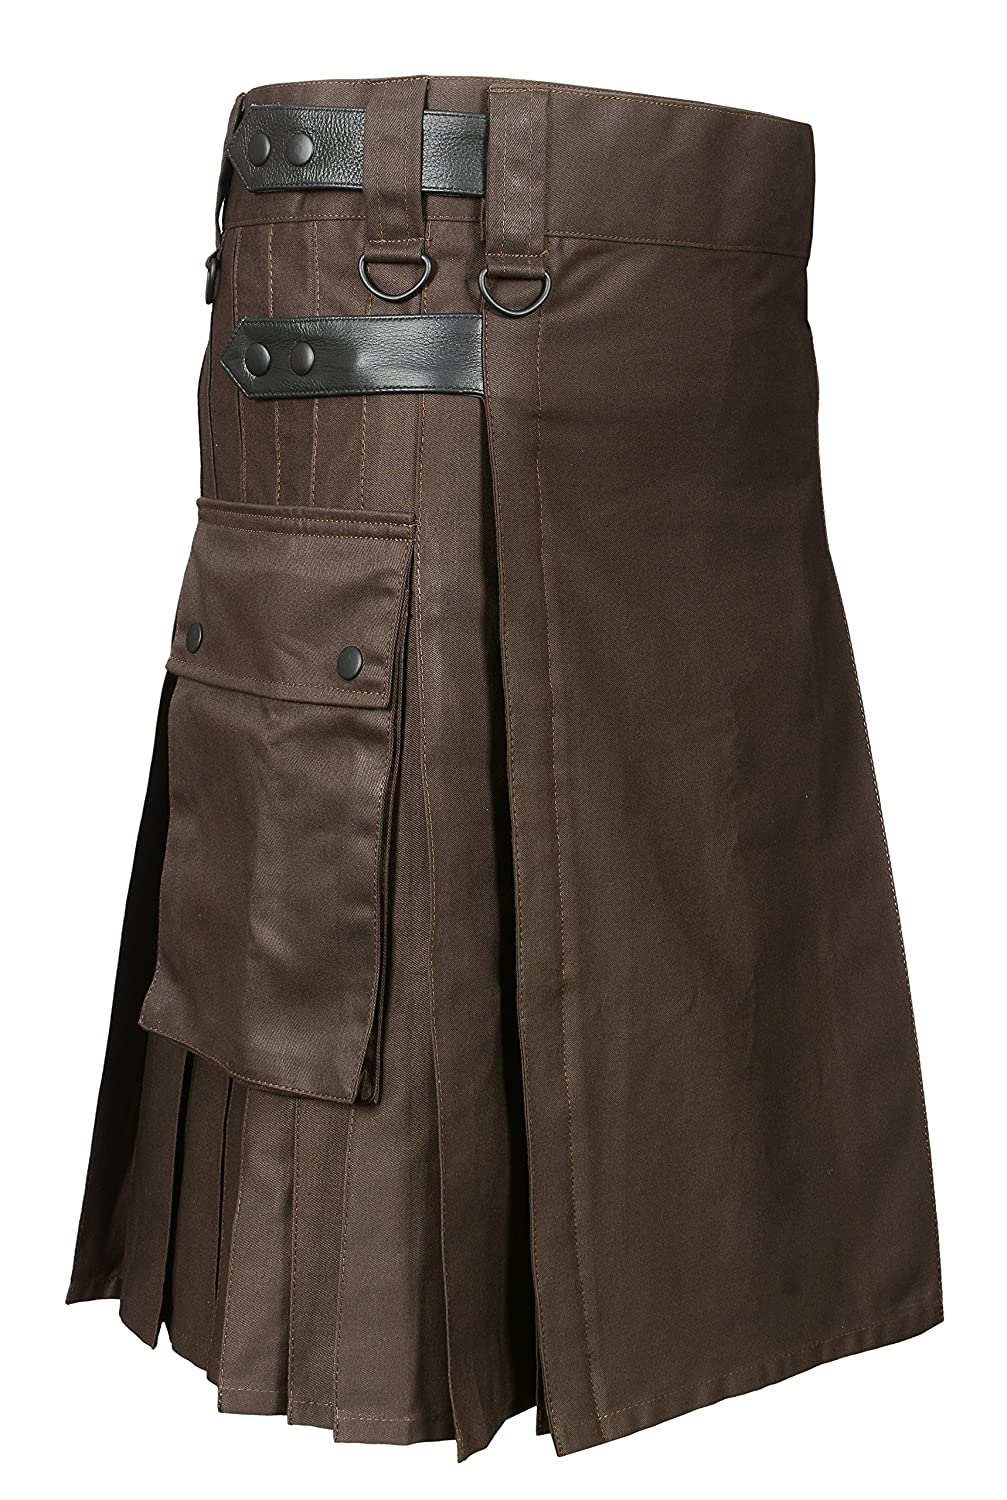 Scottish Brown Utility Kilt For Men Brown Leather Strps